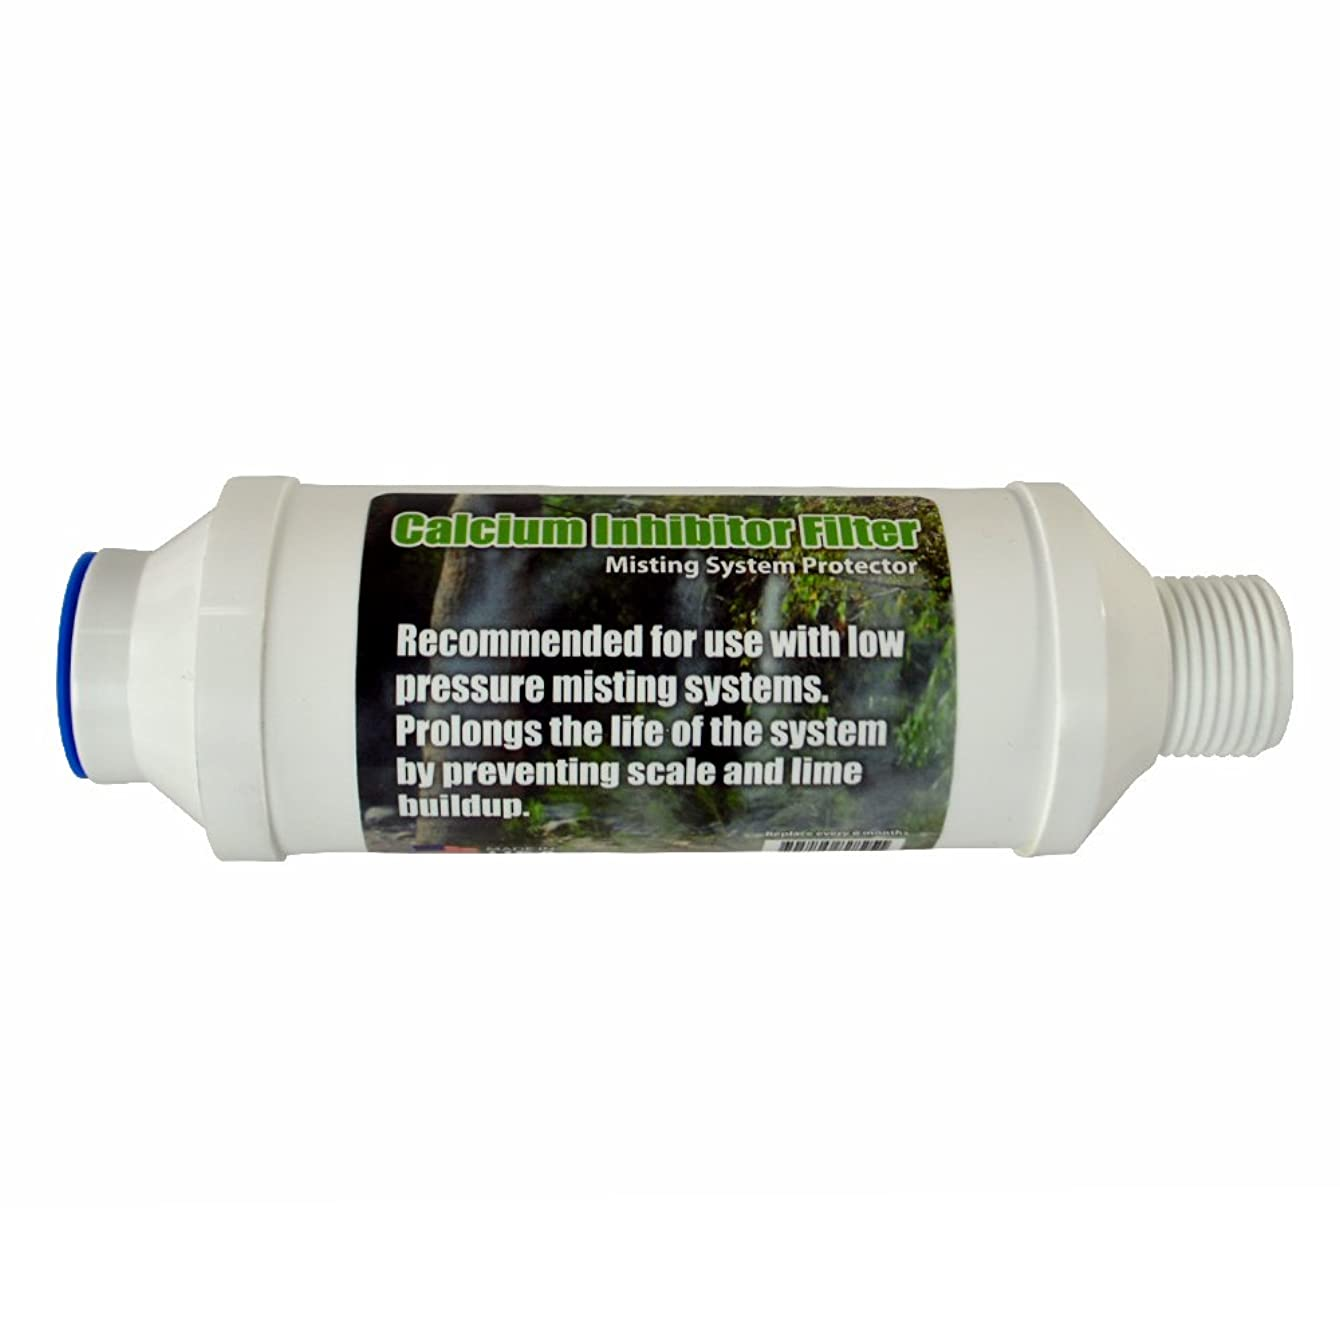 WaterSentinel WS-21 Calcium Inhibitor Filter and Misting System Protector